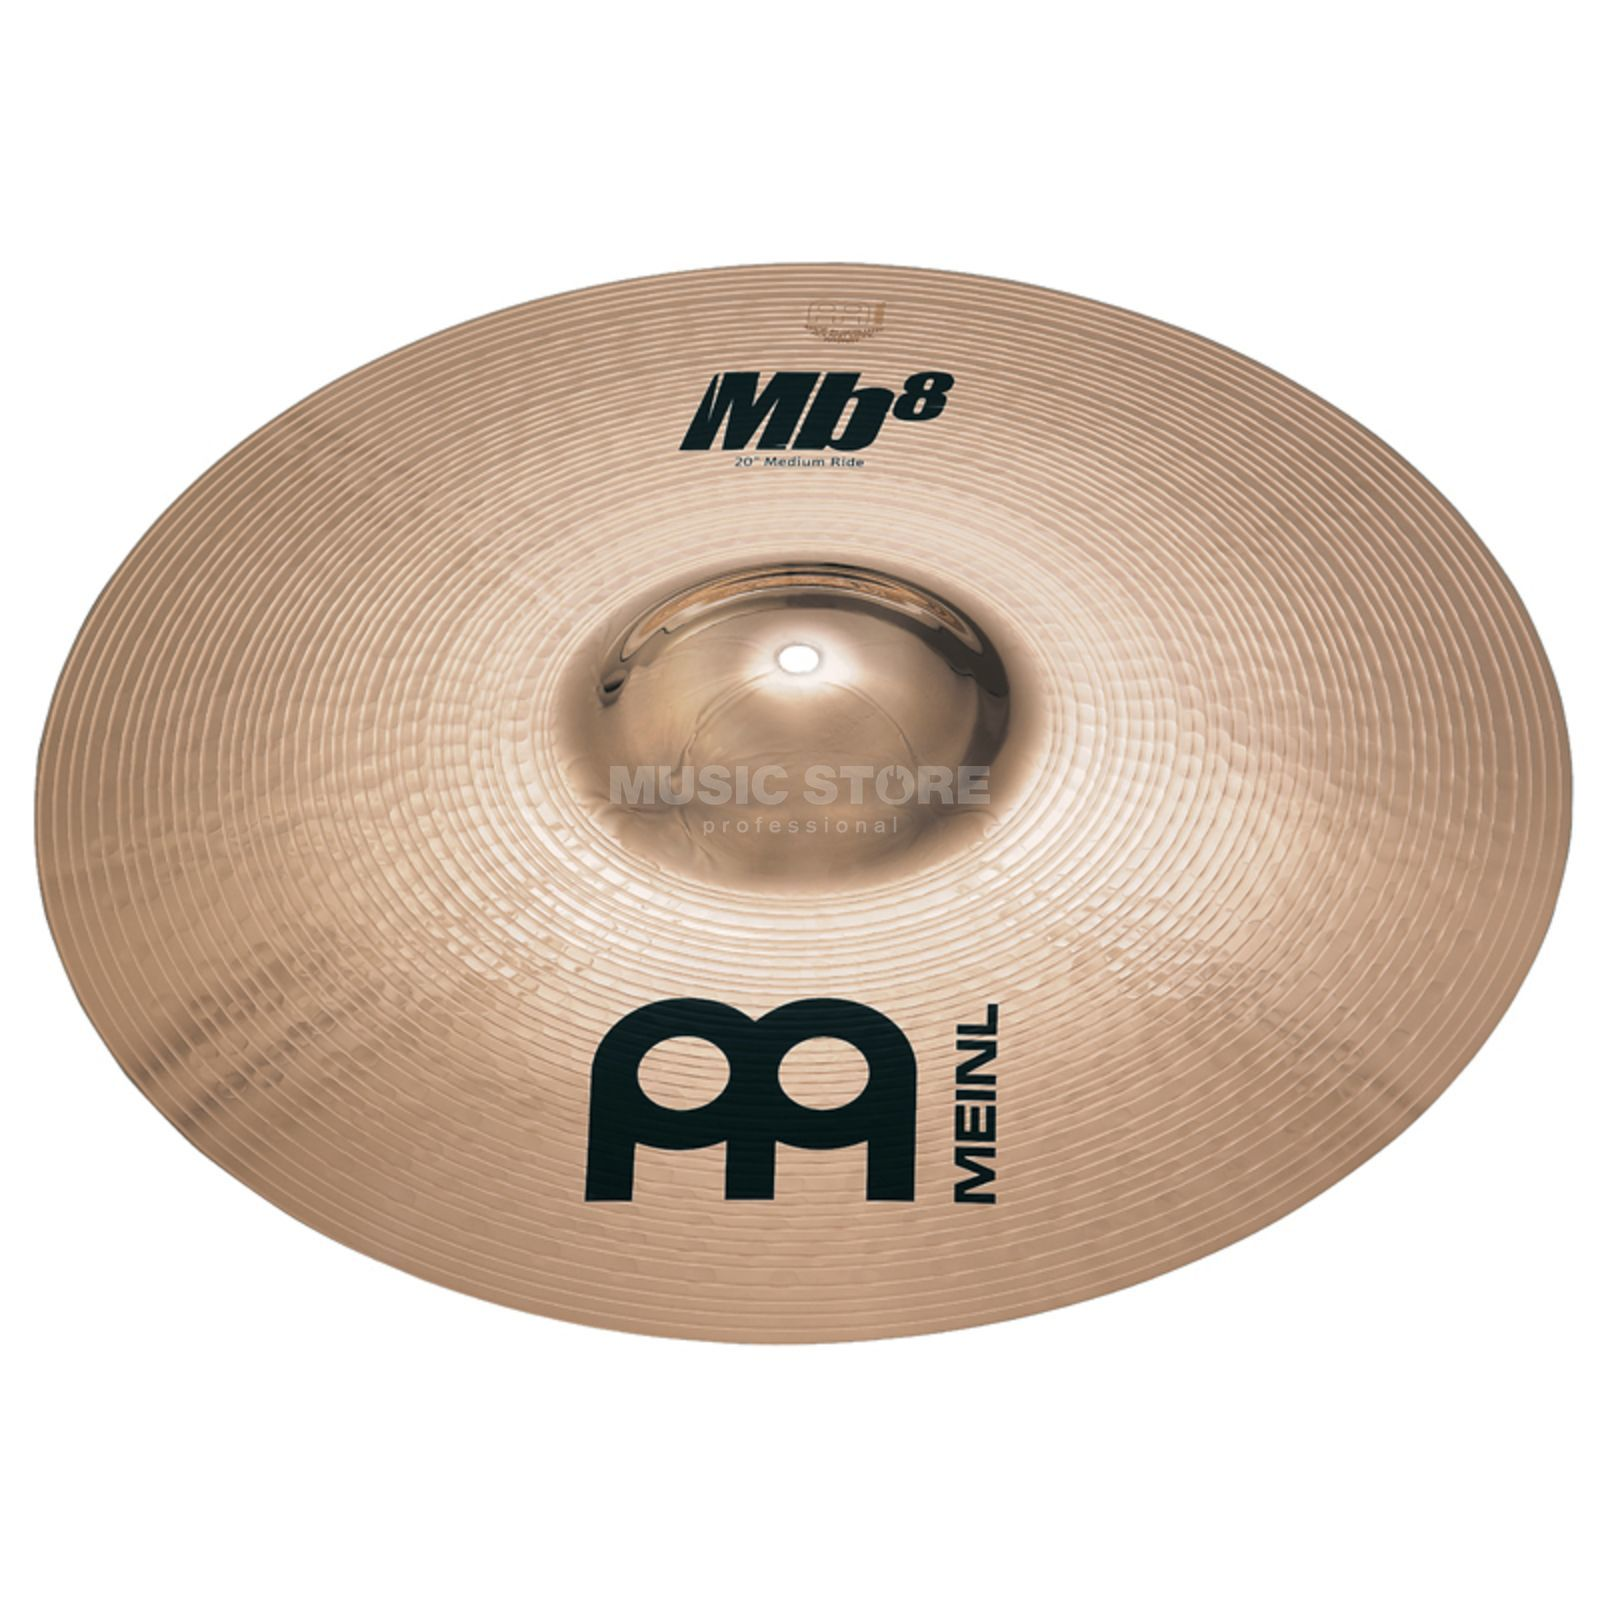 "Meinl MB8 Heavy Ride 22"", MB8-22HR-B, Brilliant Finish Zdjęcie produktu"